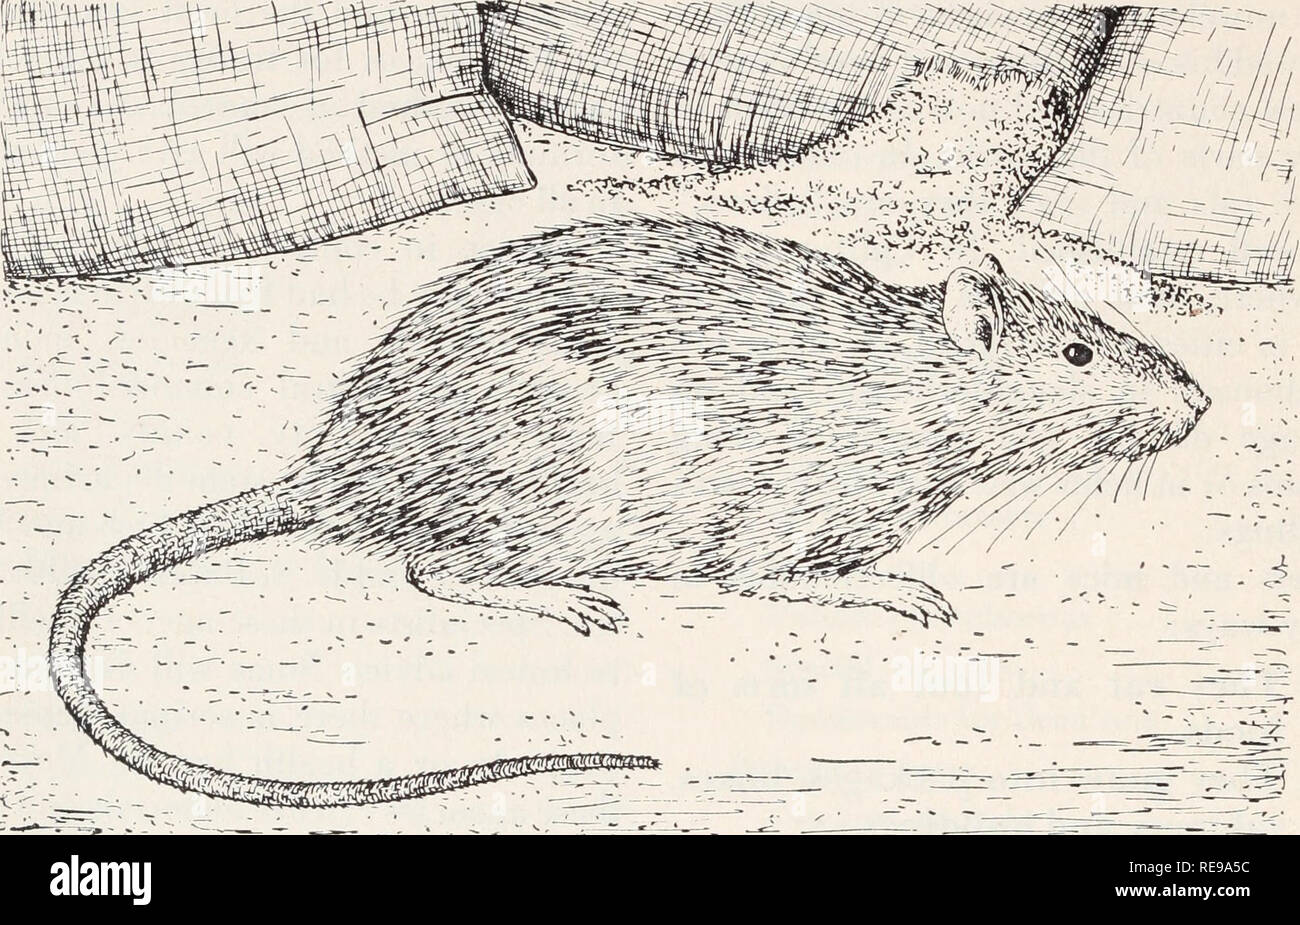 Control of rats and mice  Rats